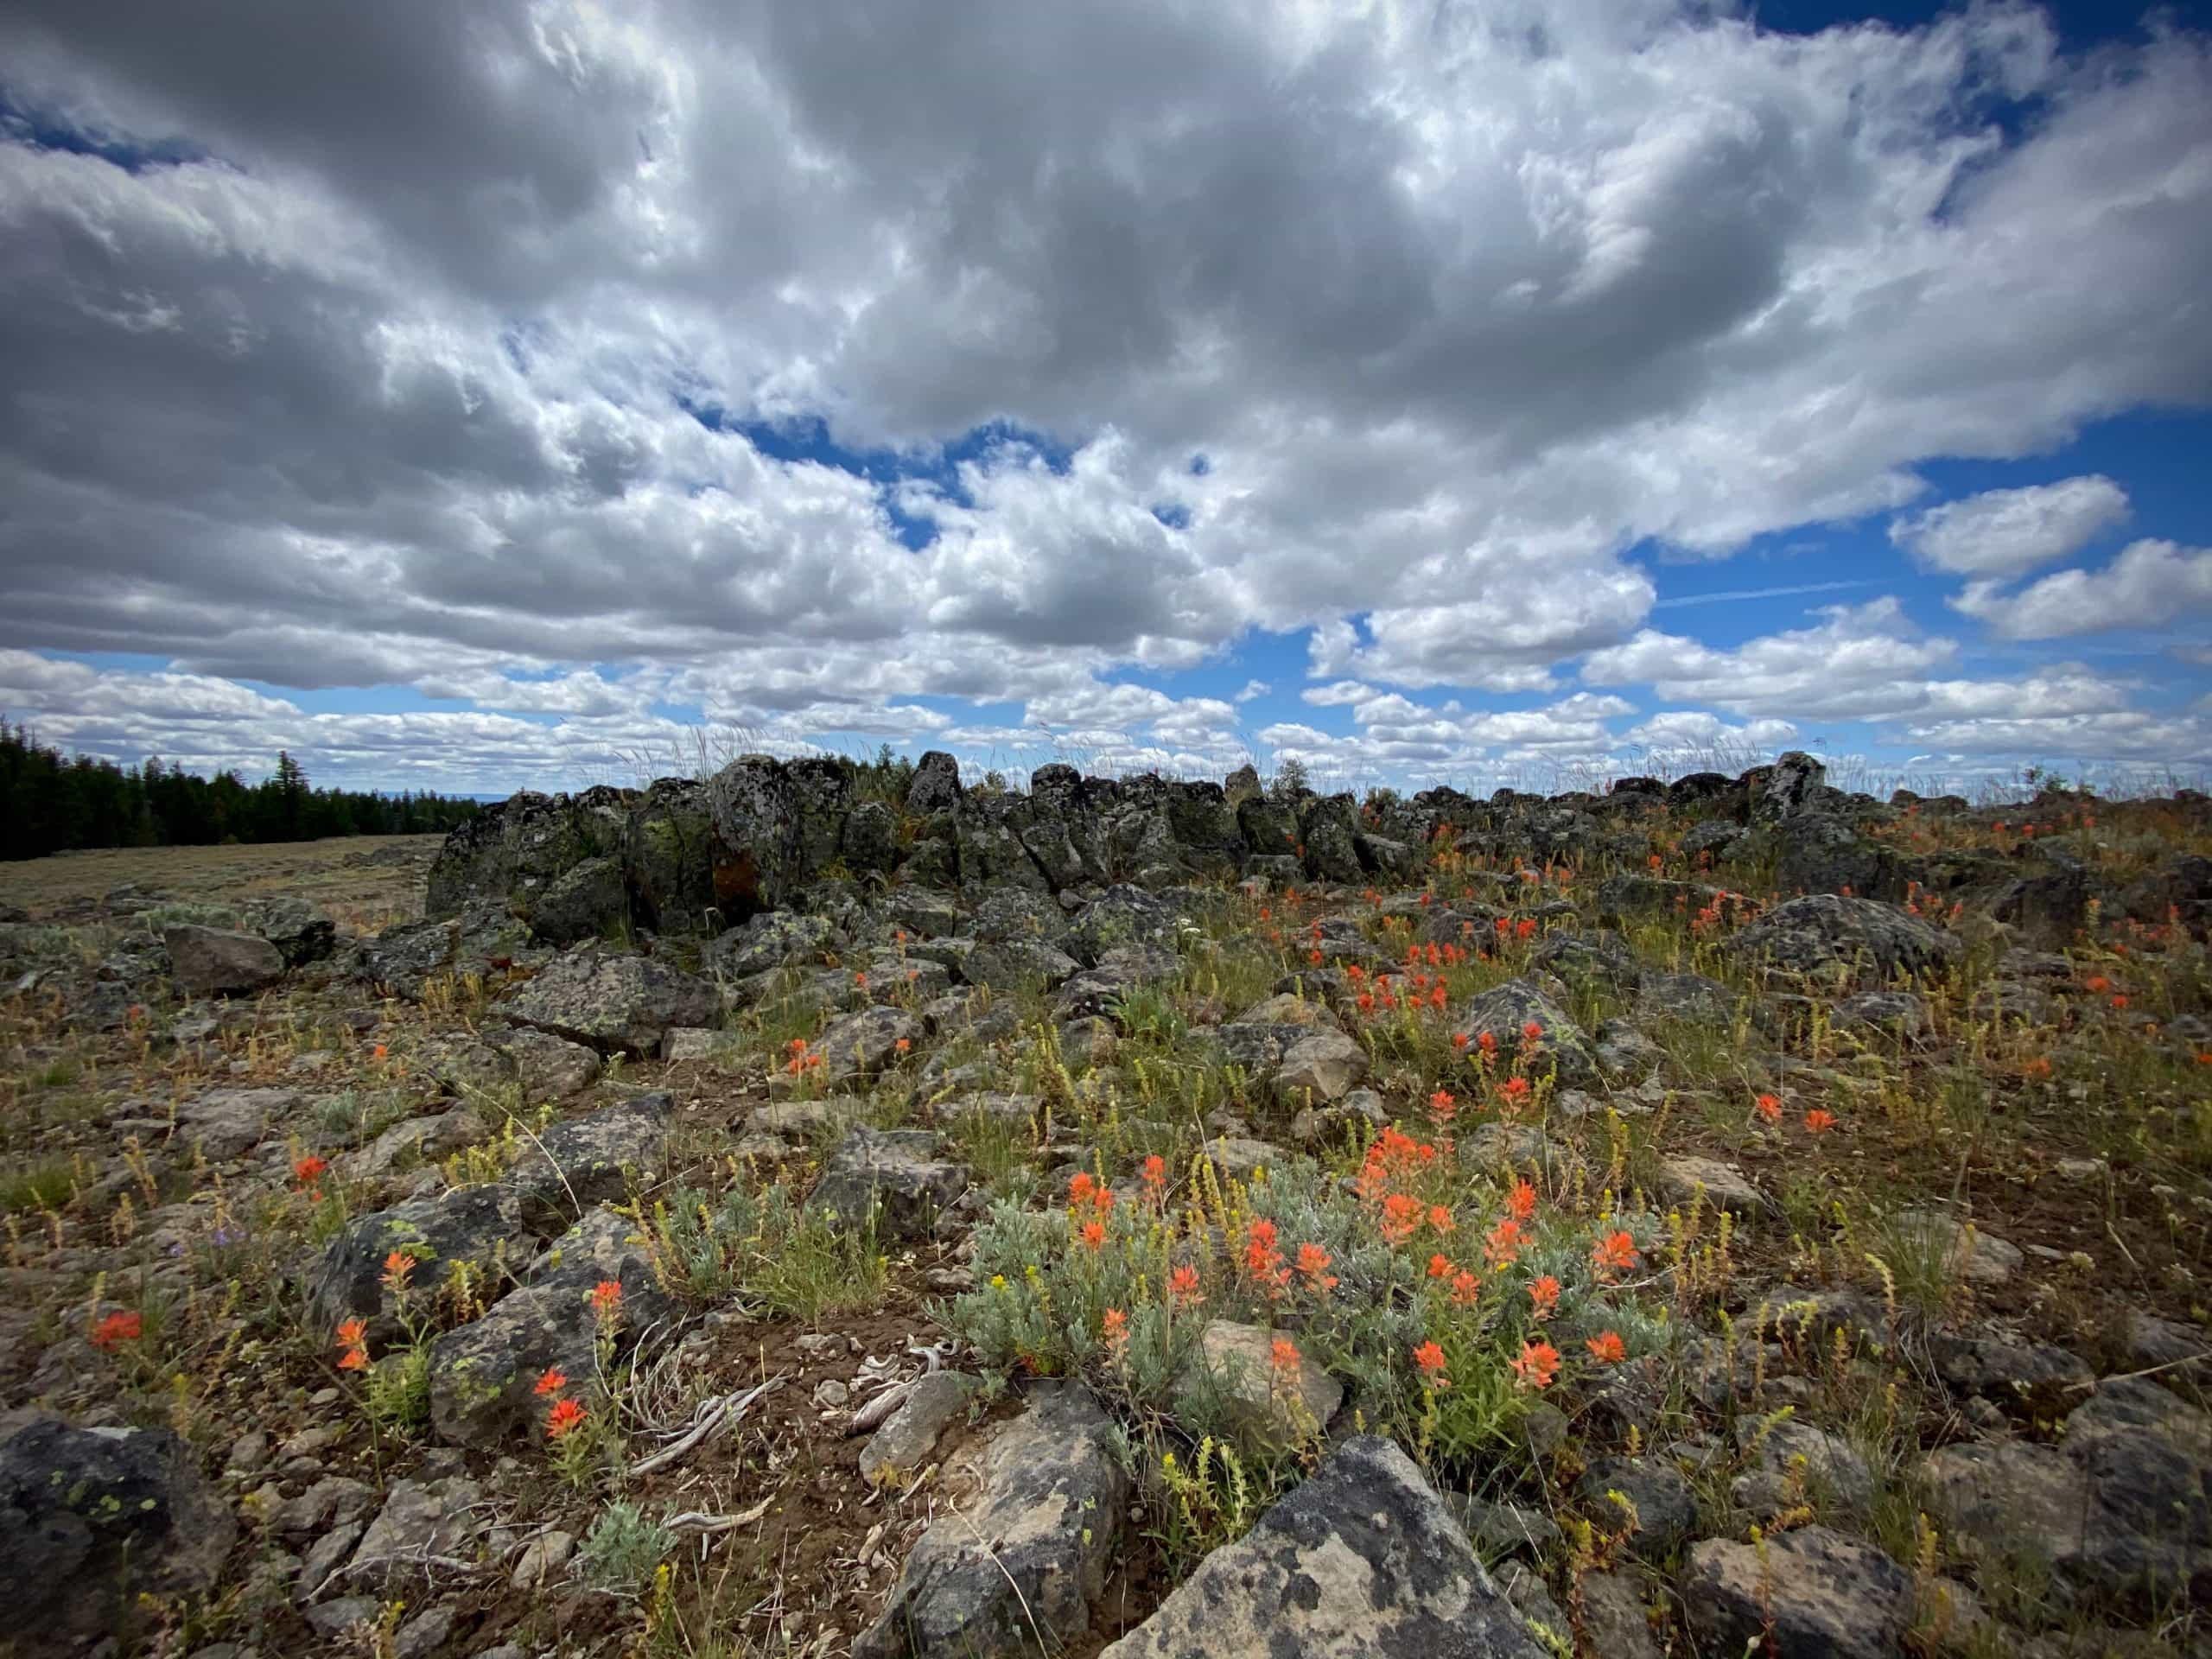 Red flowers at volcanic tuft in the Peterson Lava flow in the Ochoco mountains near Prineville, Oregon.